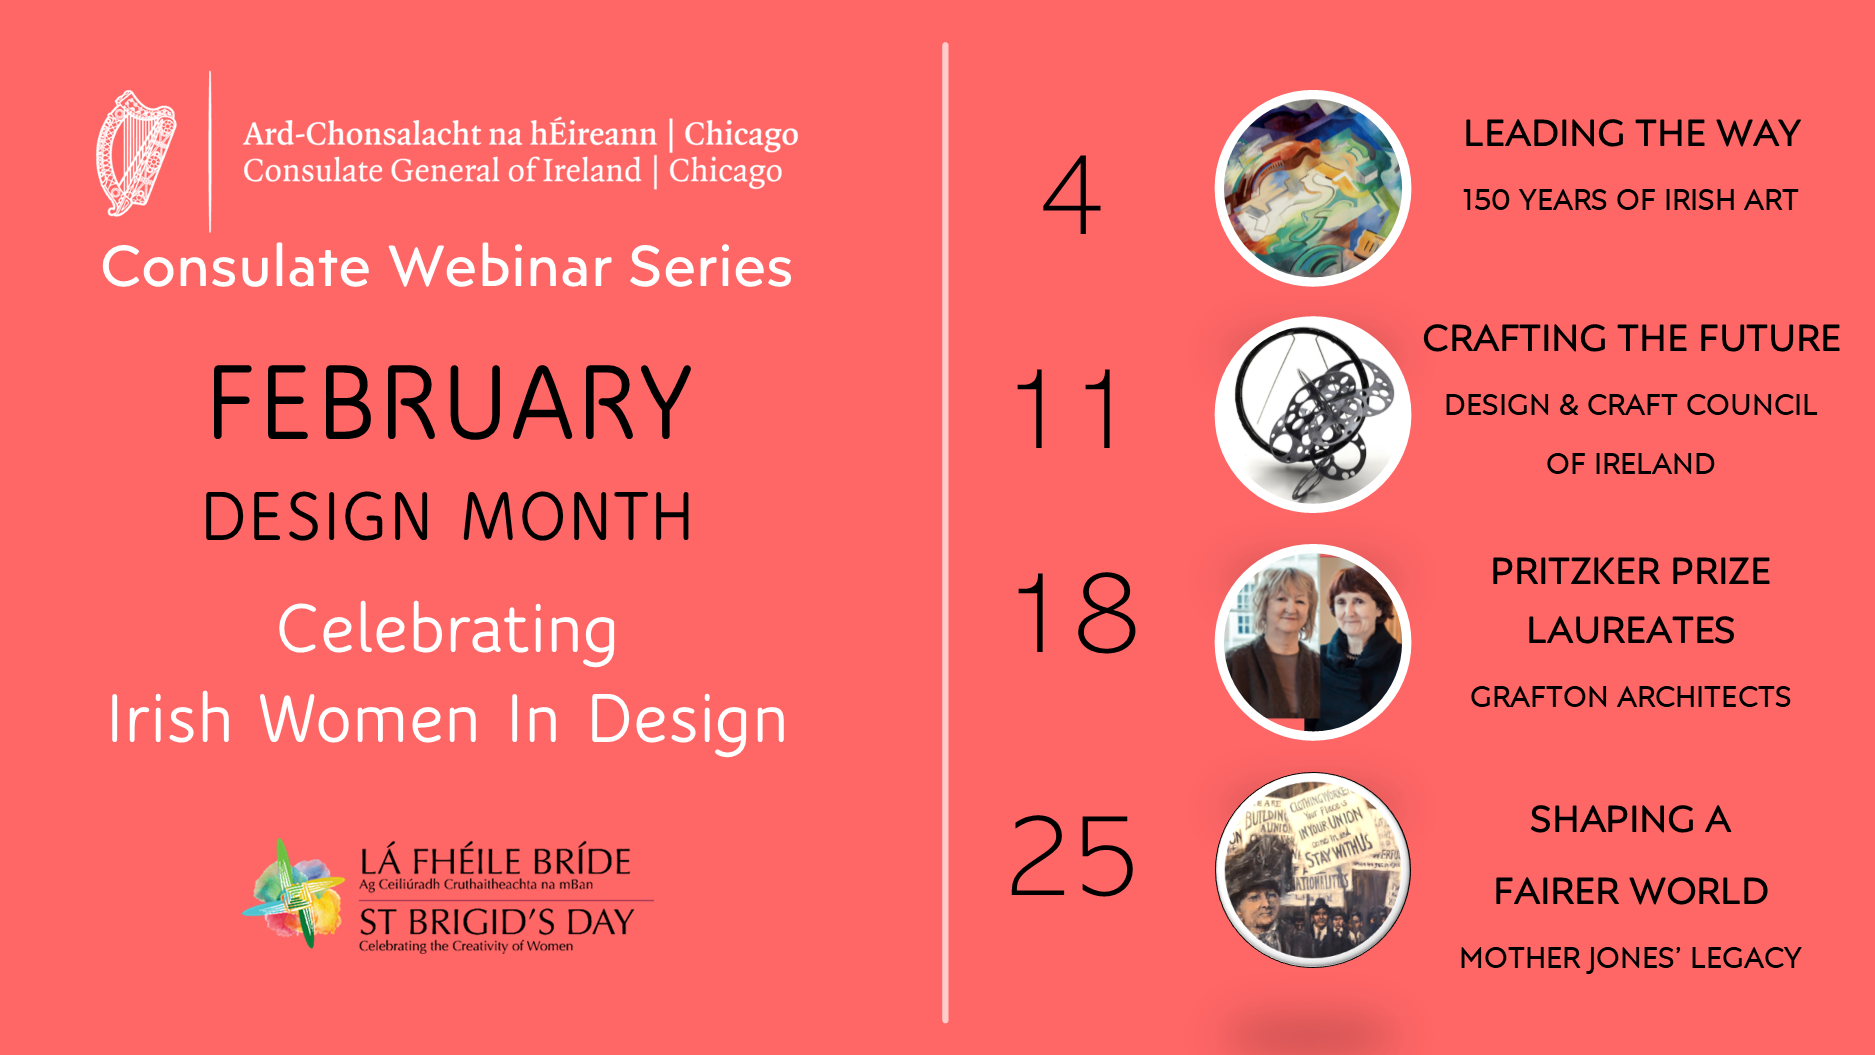 February Design Month-Consulate Webinar Series Celebrating Irish Women in Design. View events here.